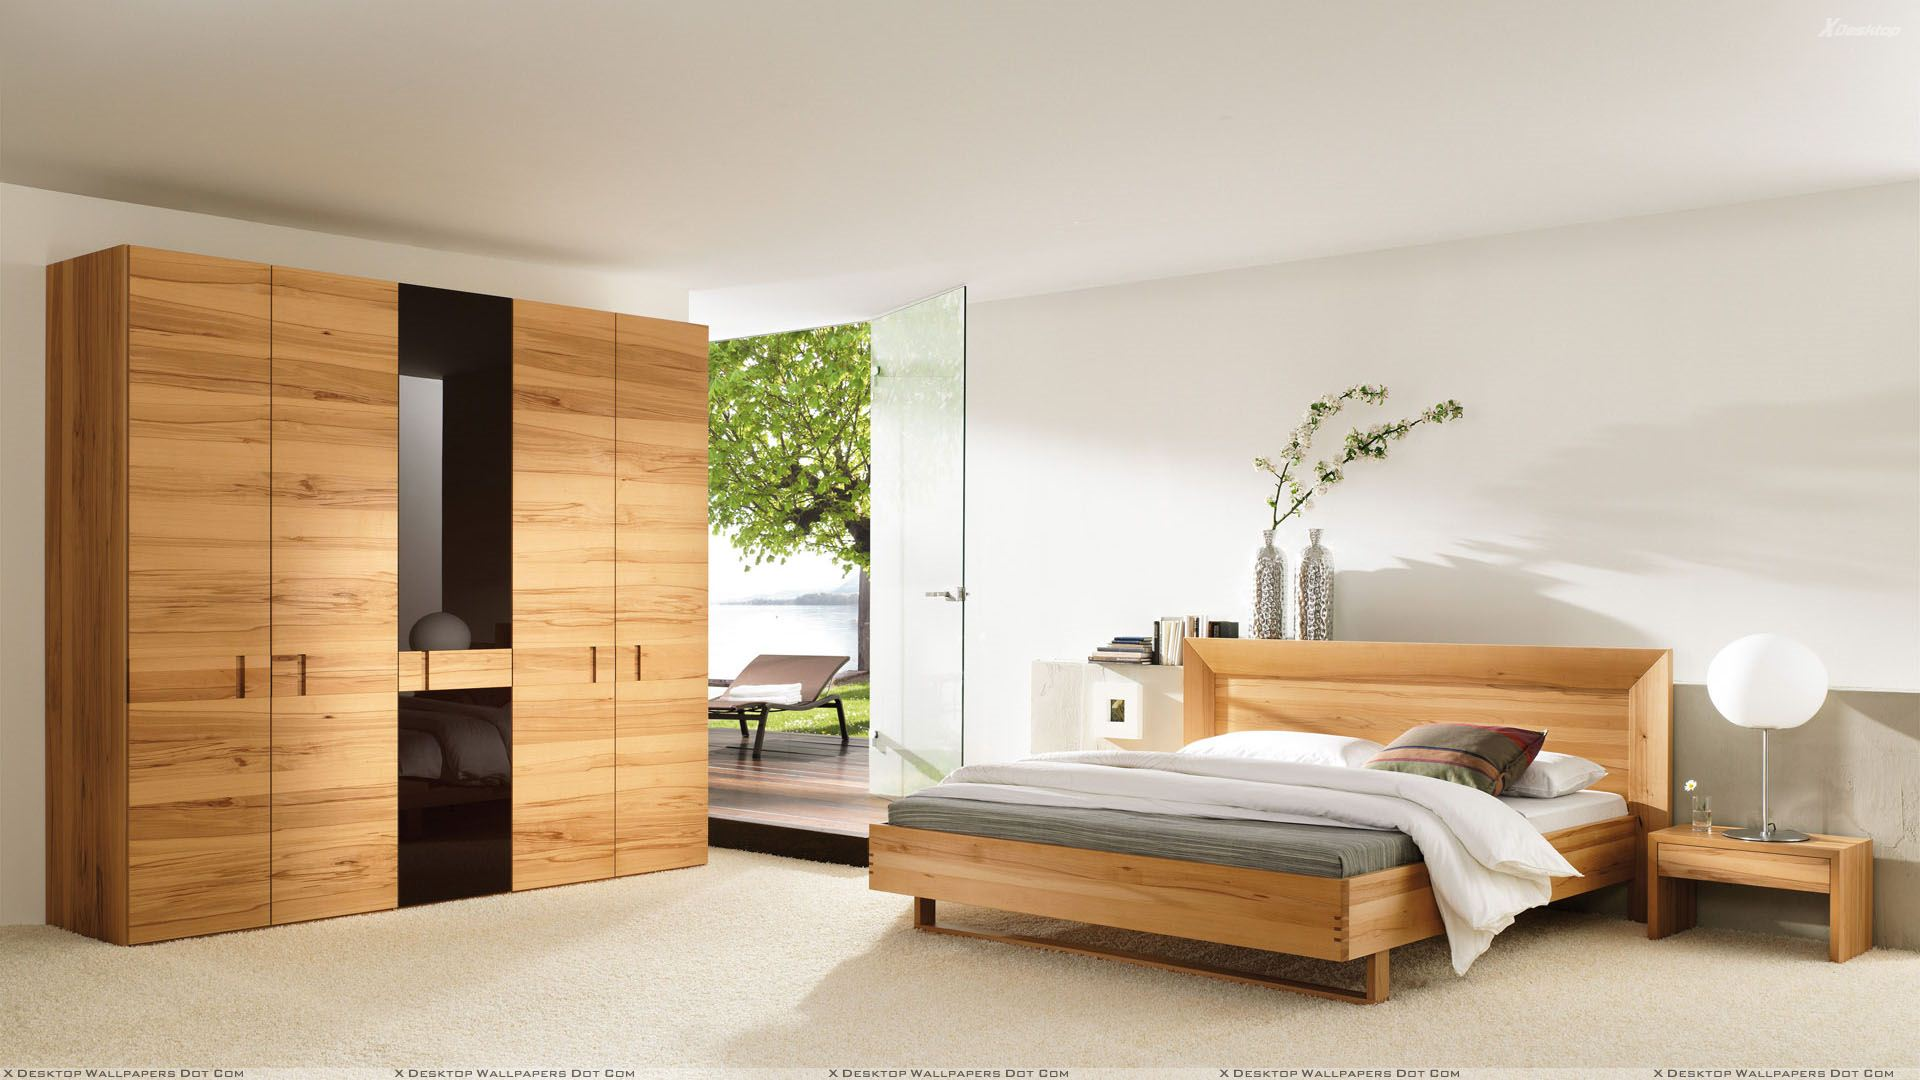 Enjoyable Wooden Furniture And Bed In Bedroom Wallpaper Interior Design Ideas Ghosoteloinfo